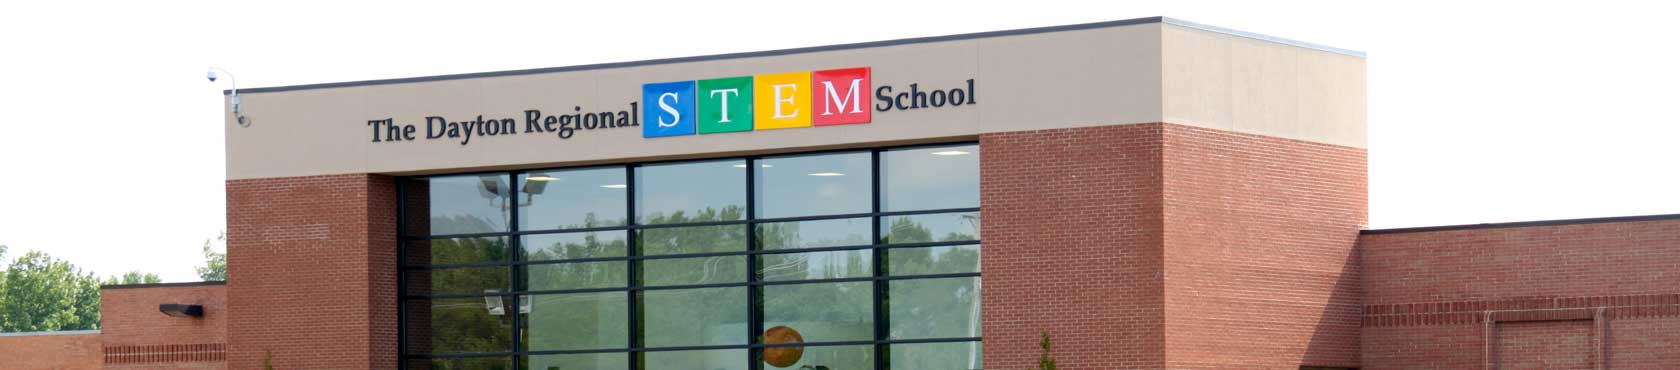 Dayton STEM School